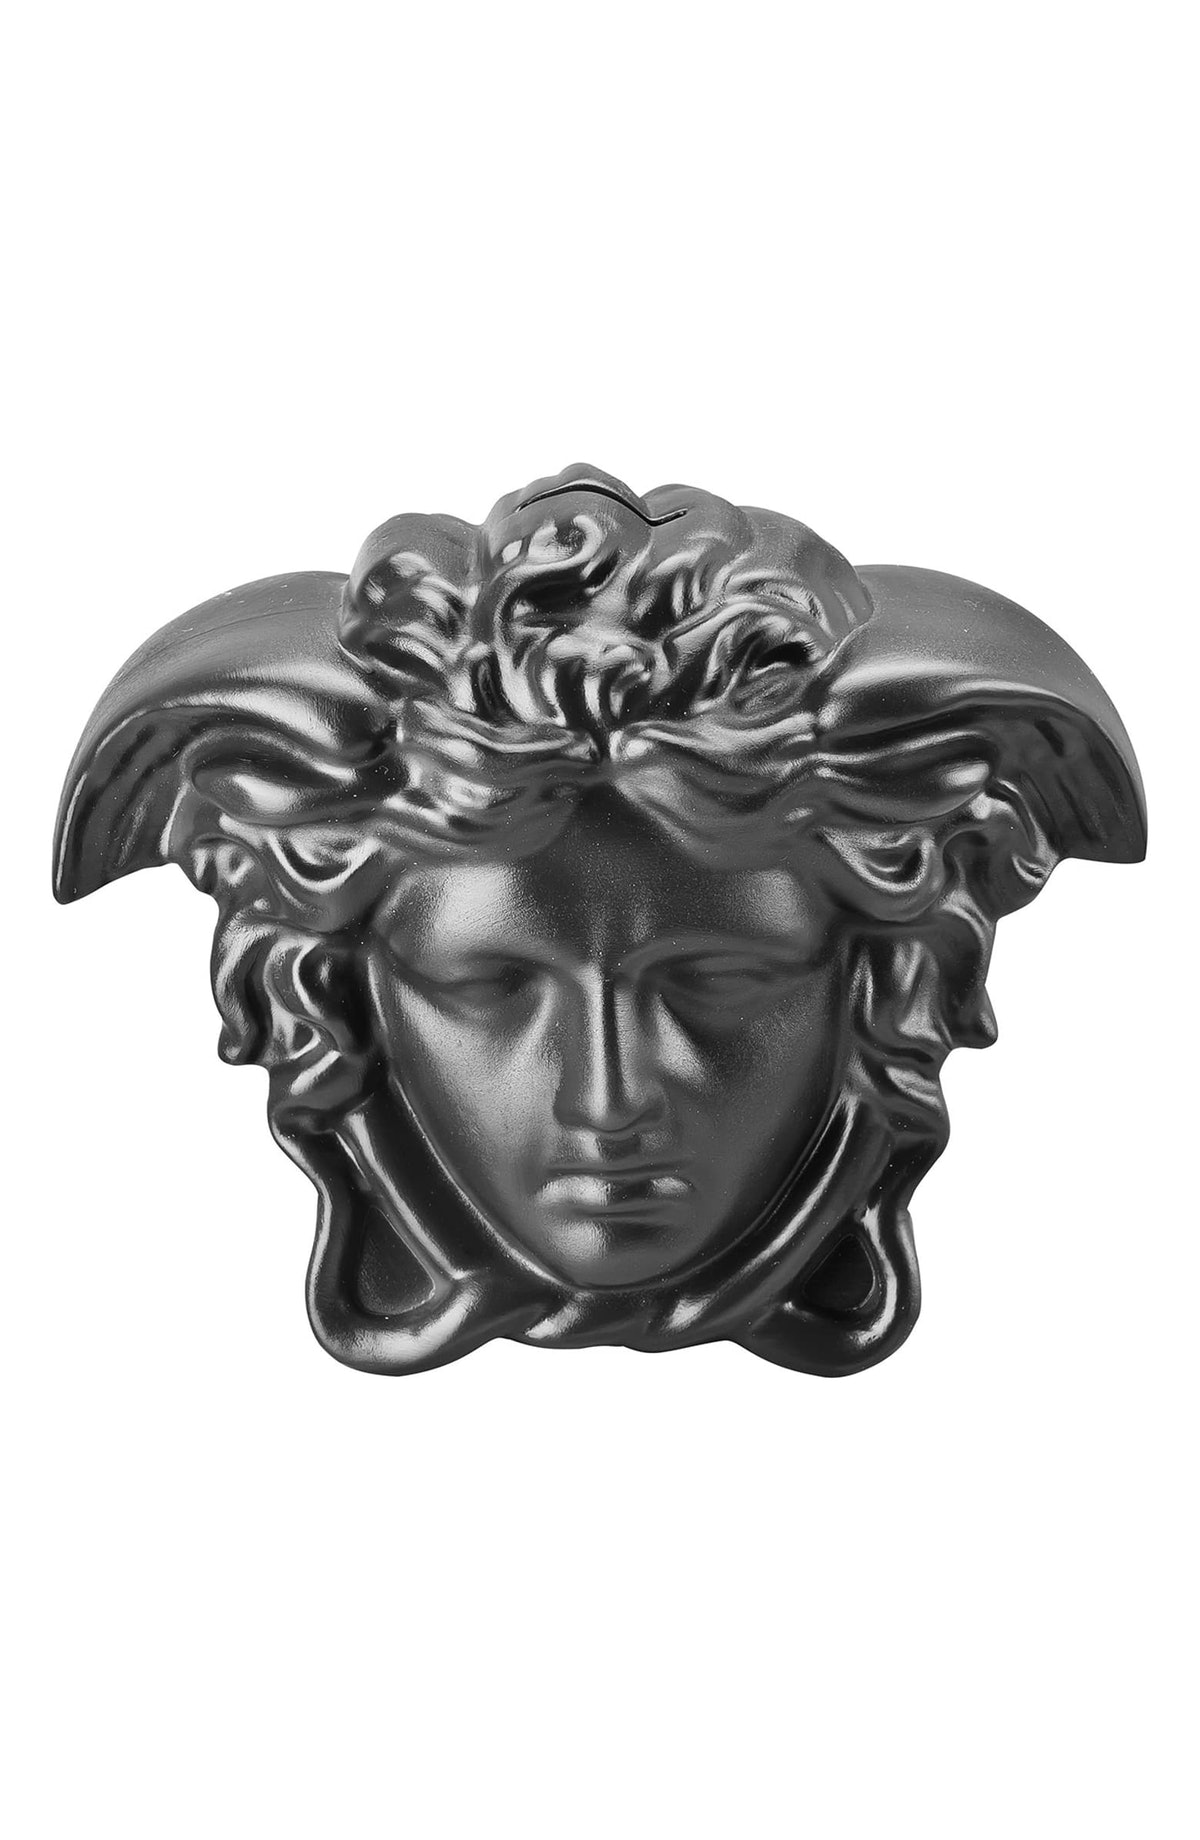 A Versace piggy bank on sale at Nordstrom